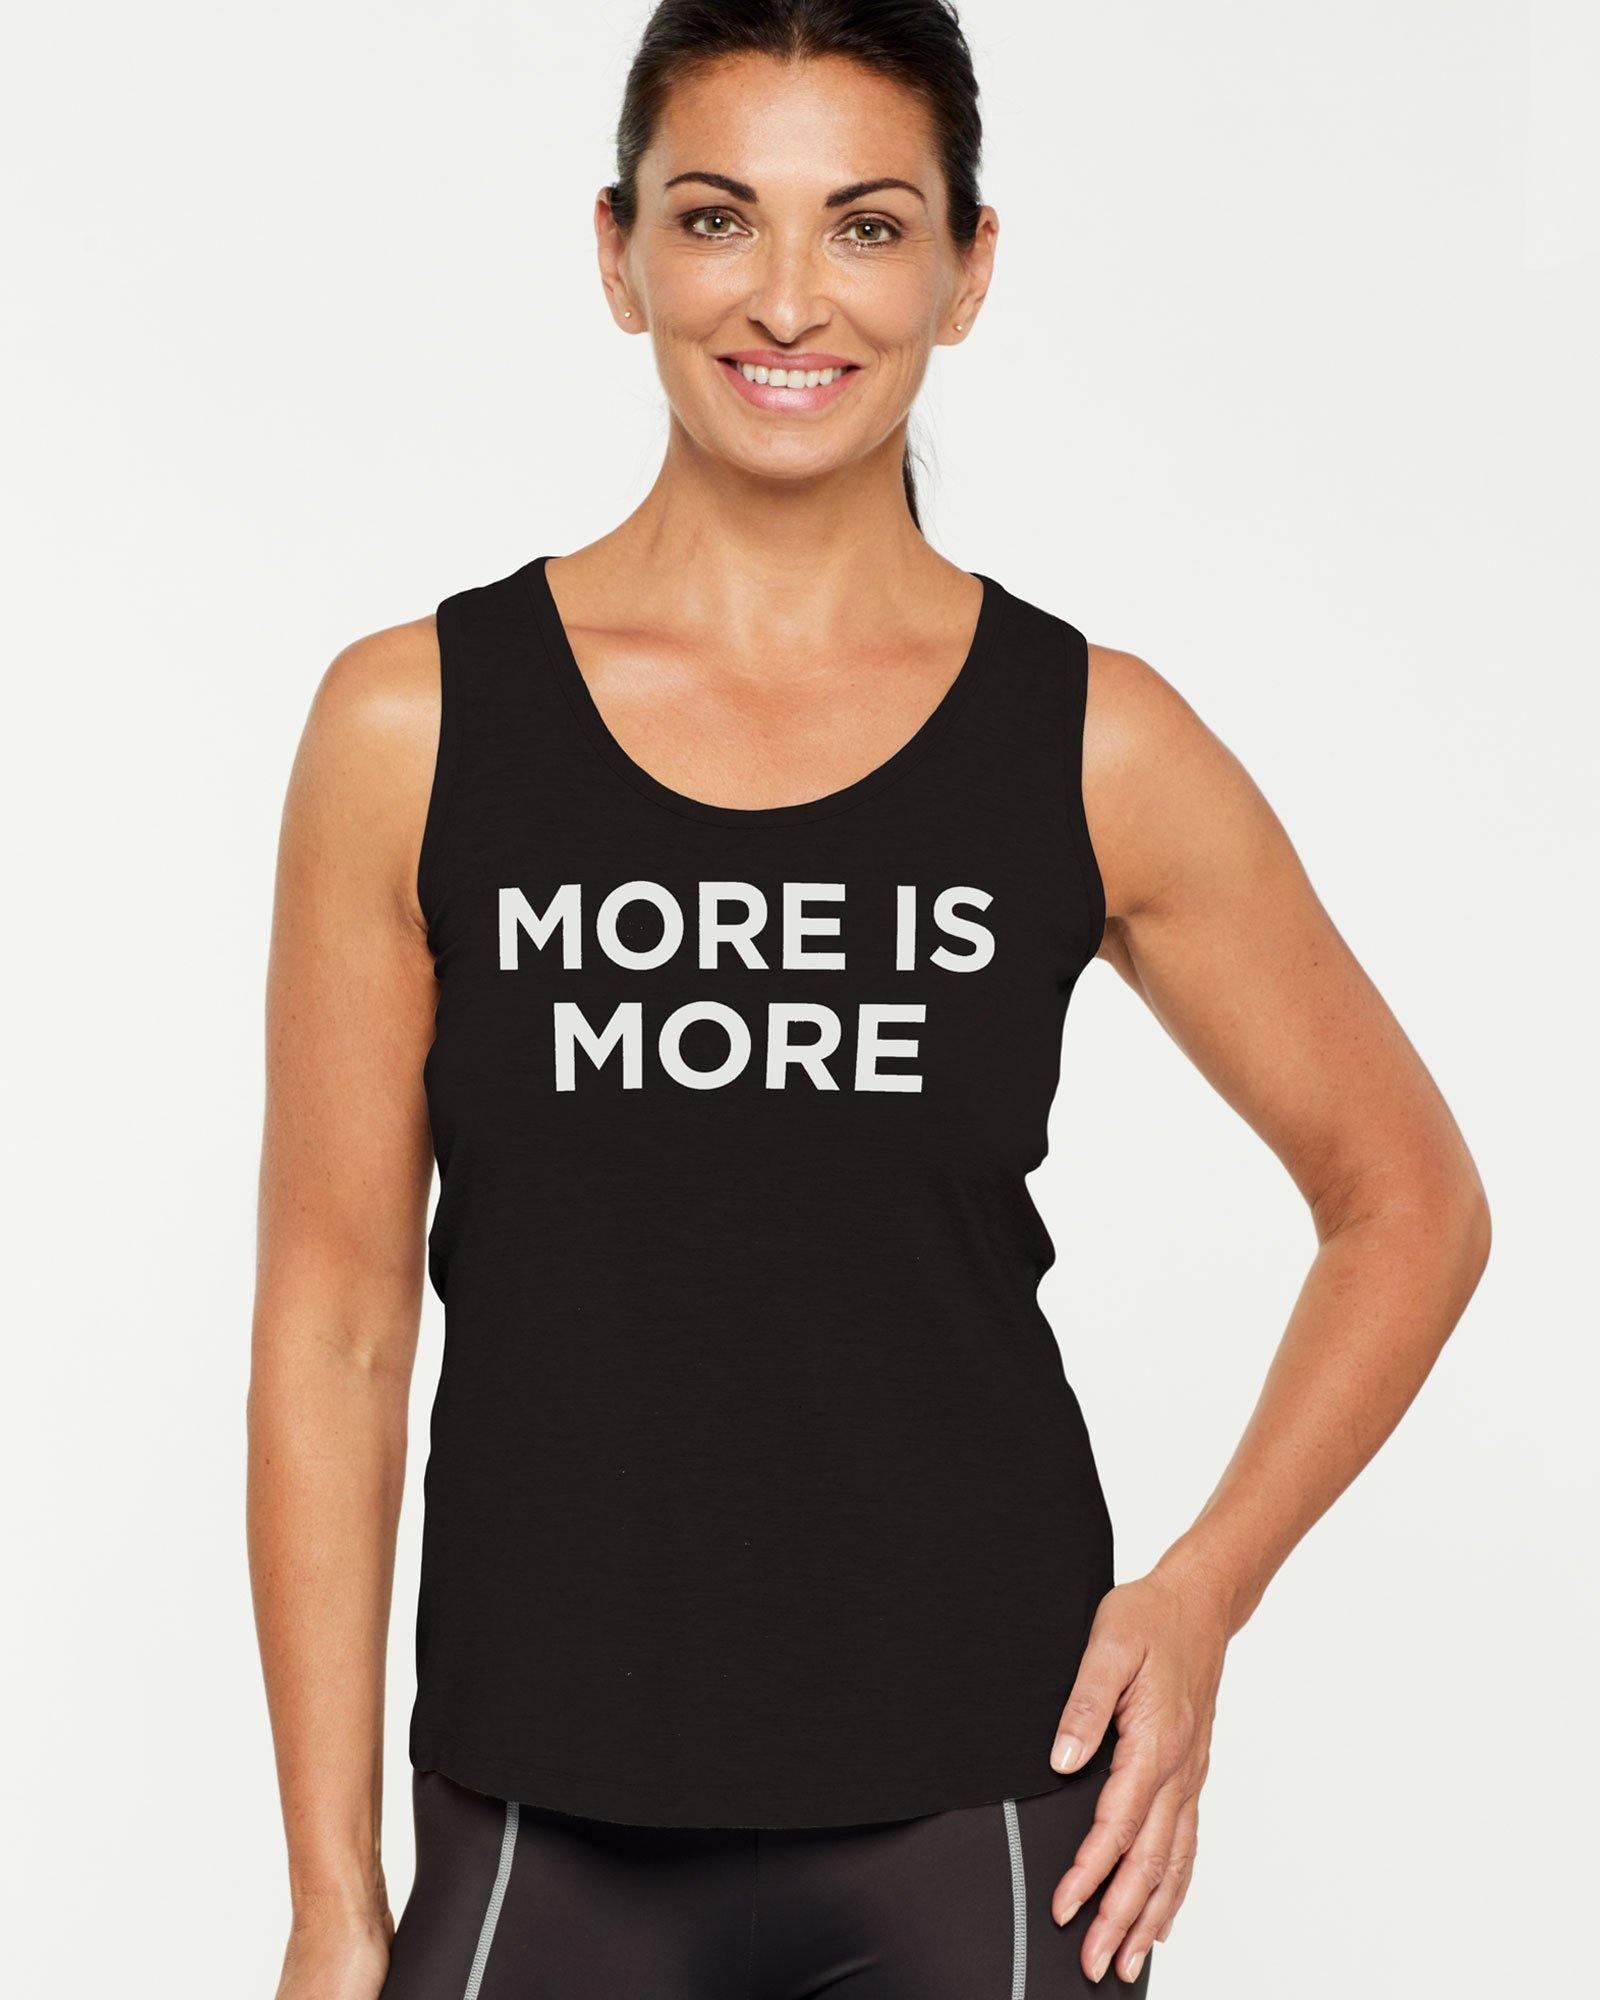 Companion RHOMBOIDEUS BLACK TANK TOP MORE IS MORE message on front in white, front view